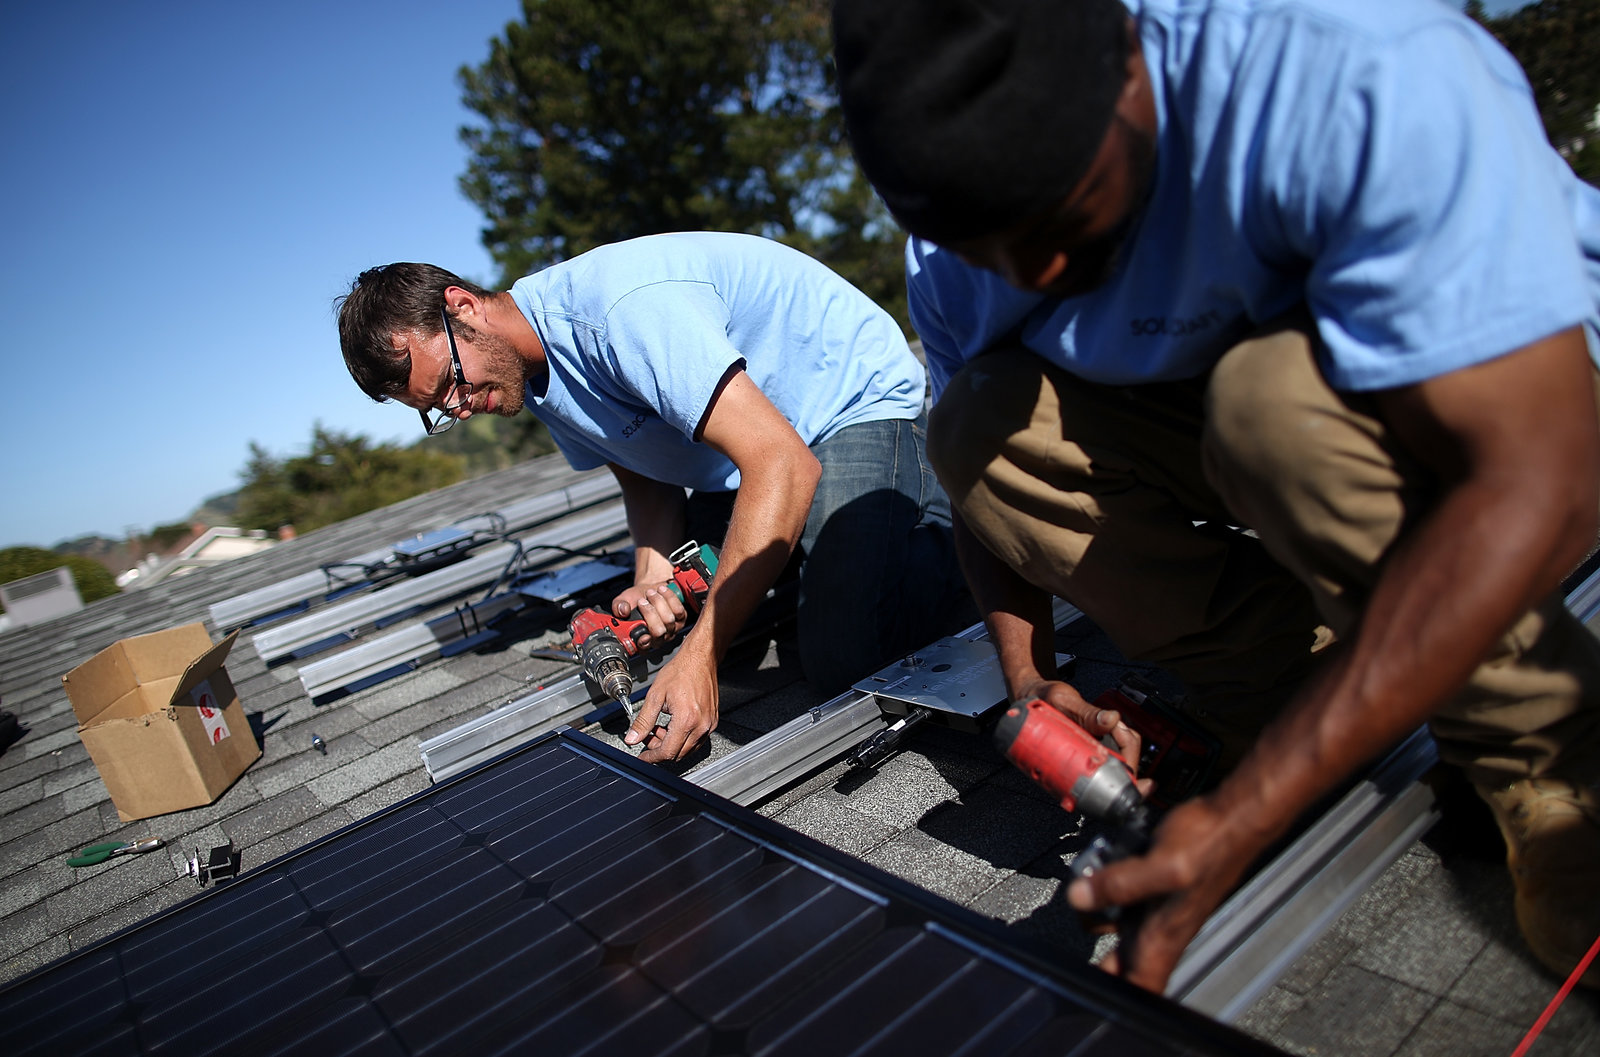 California is a leader in making solar permits faster and easier for homeowners